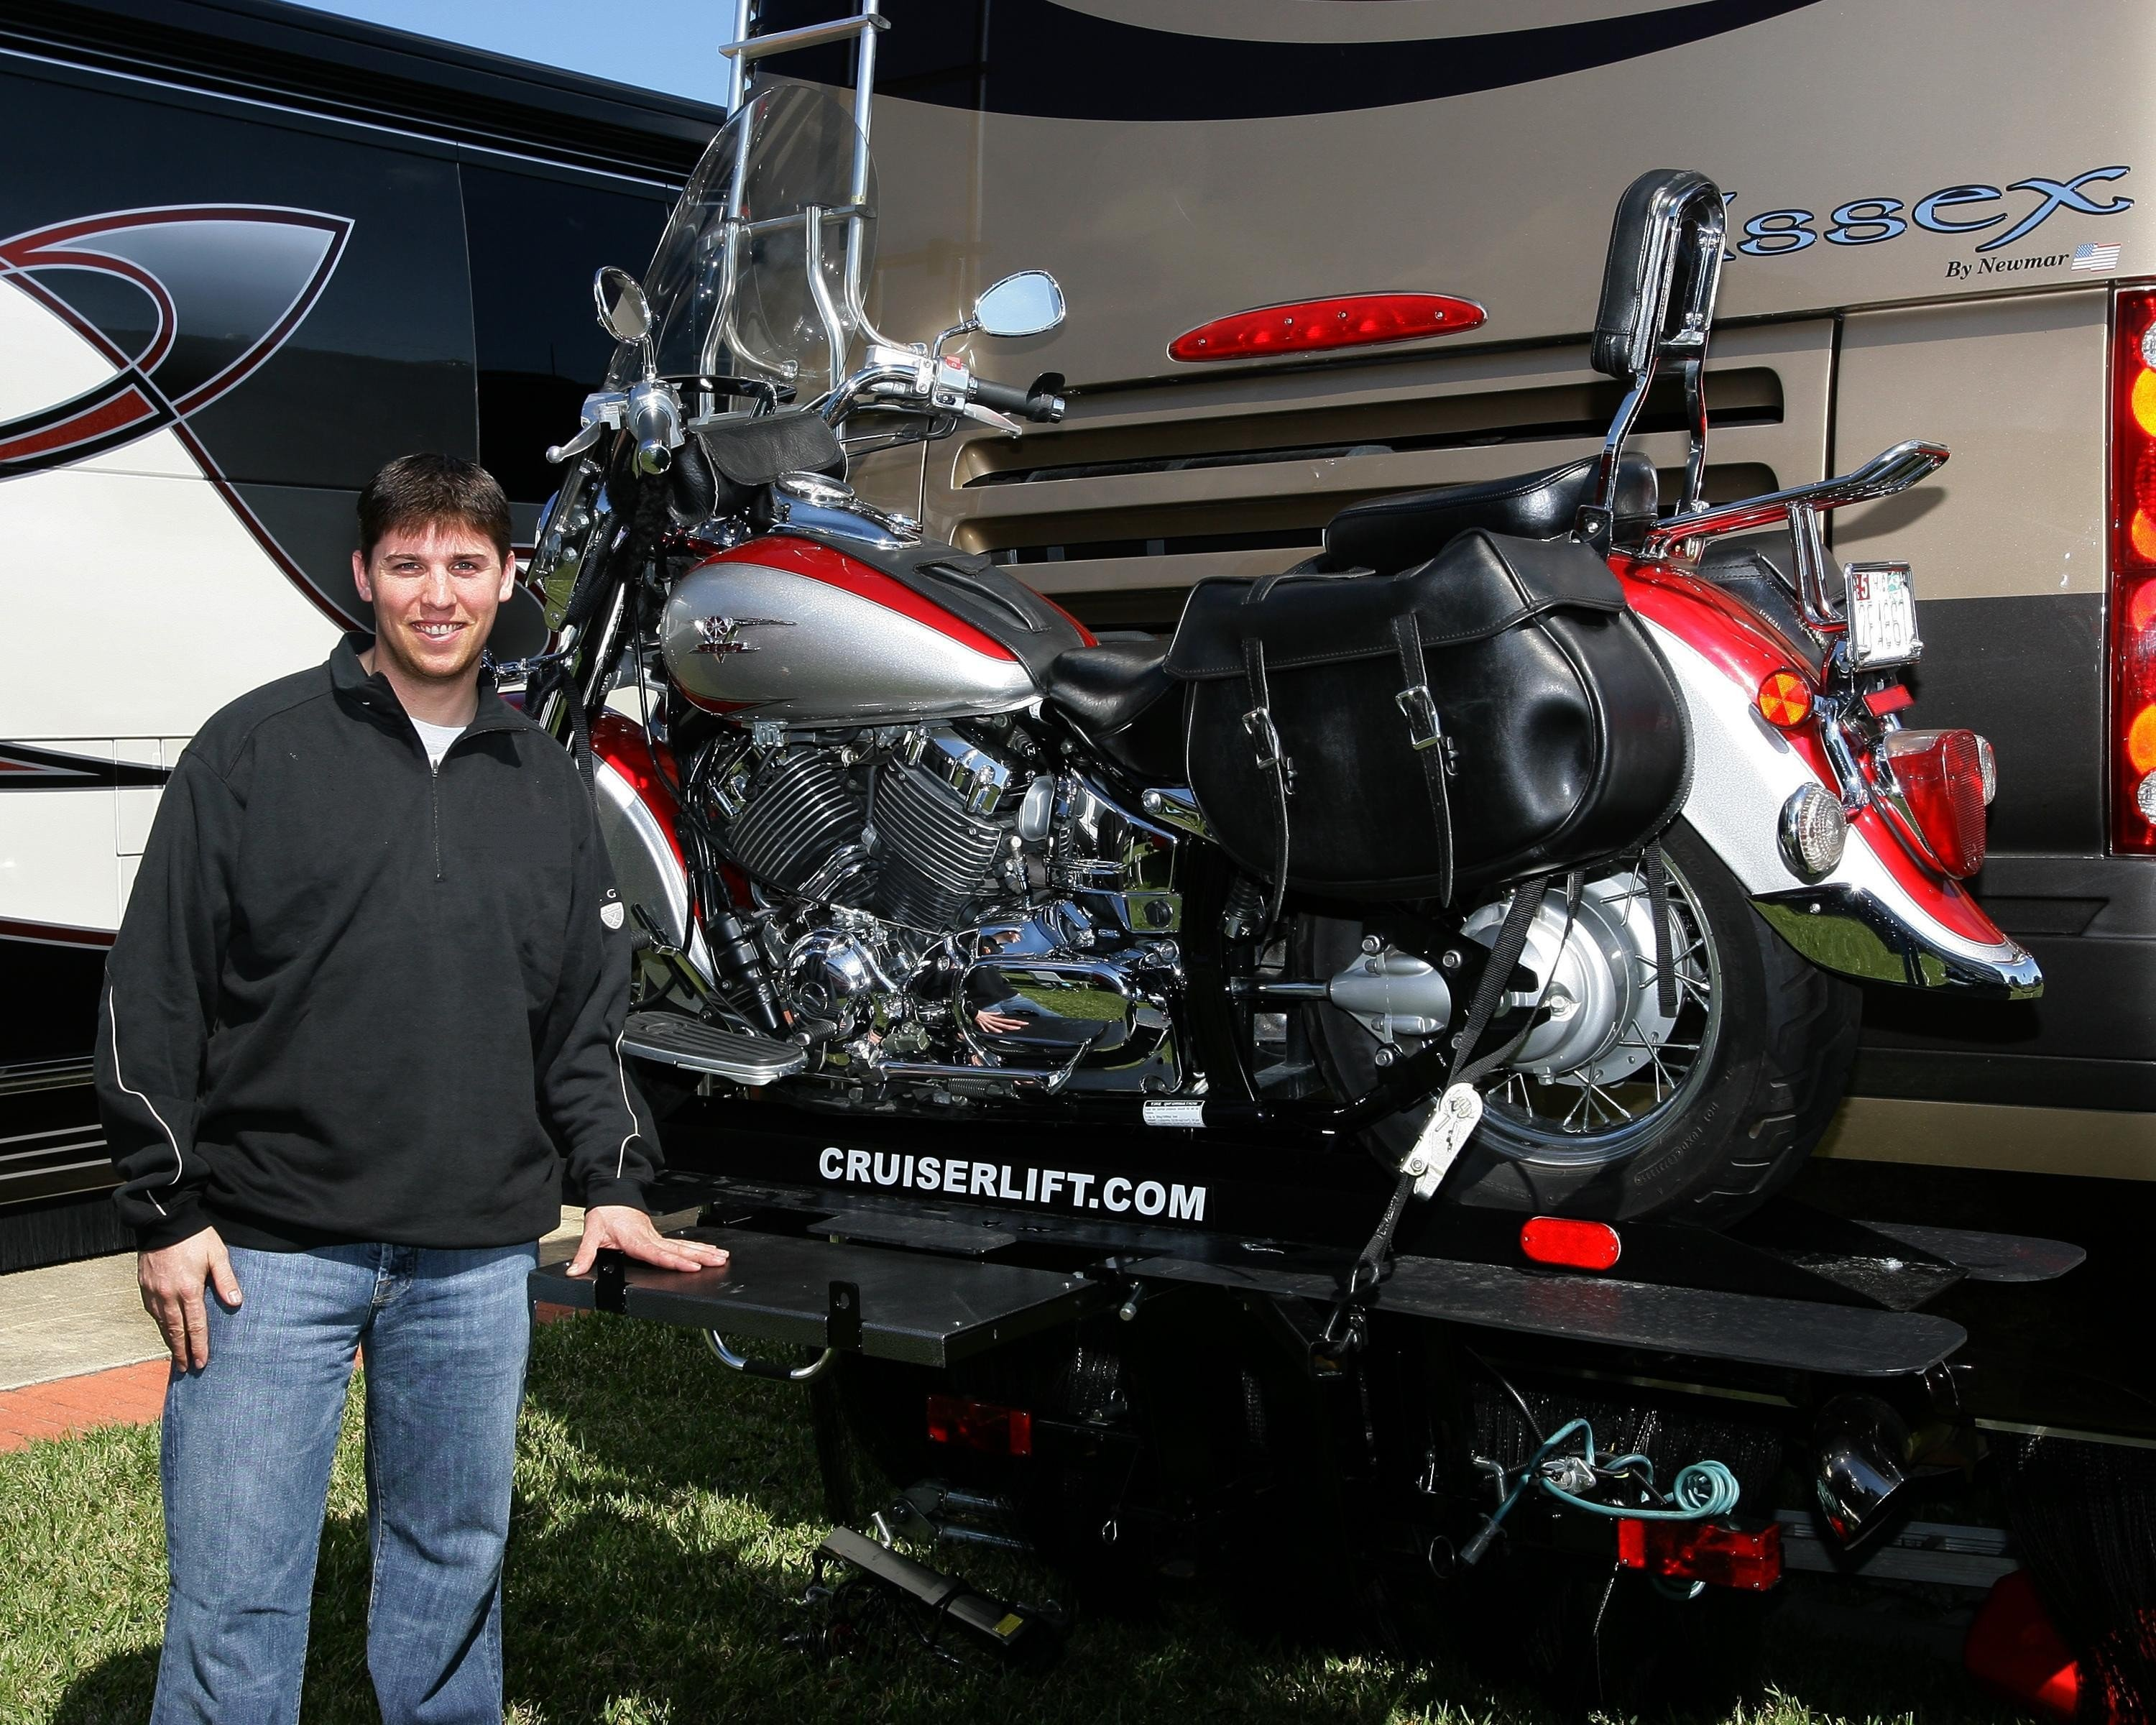 Cruiserlift RV Motorcycle Lift With Denny Hamlin